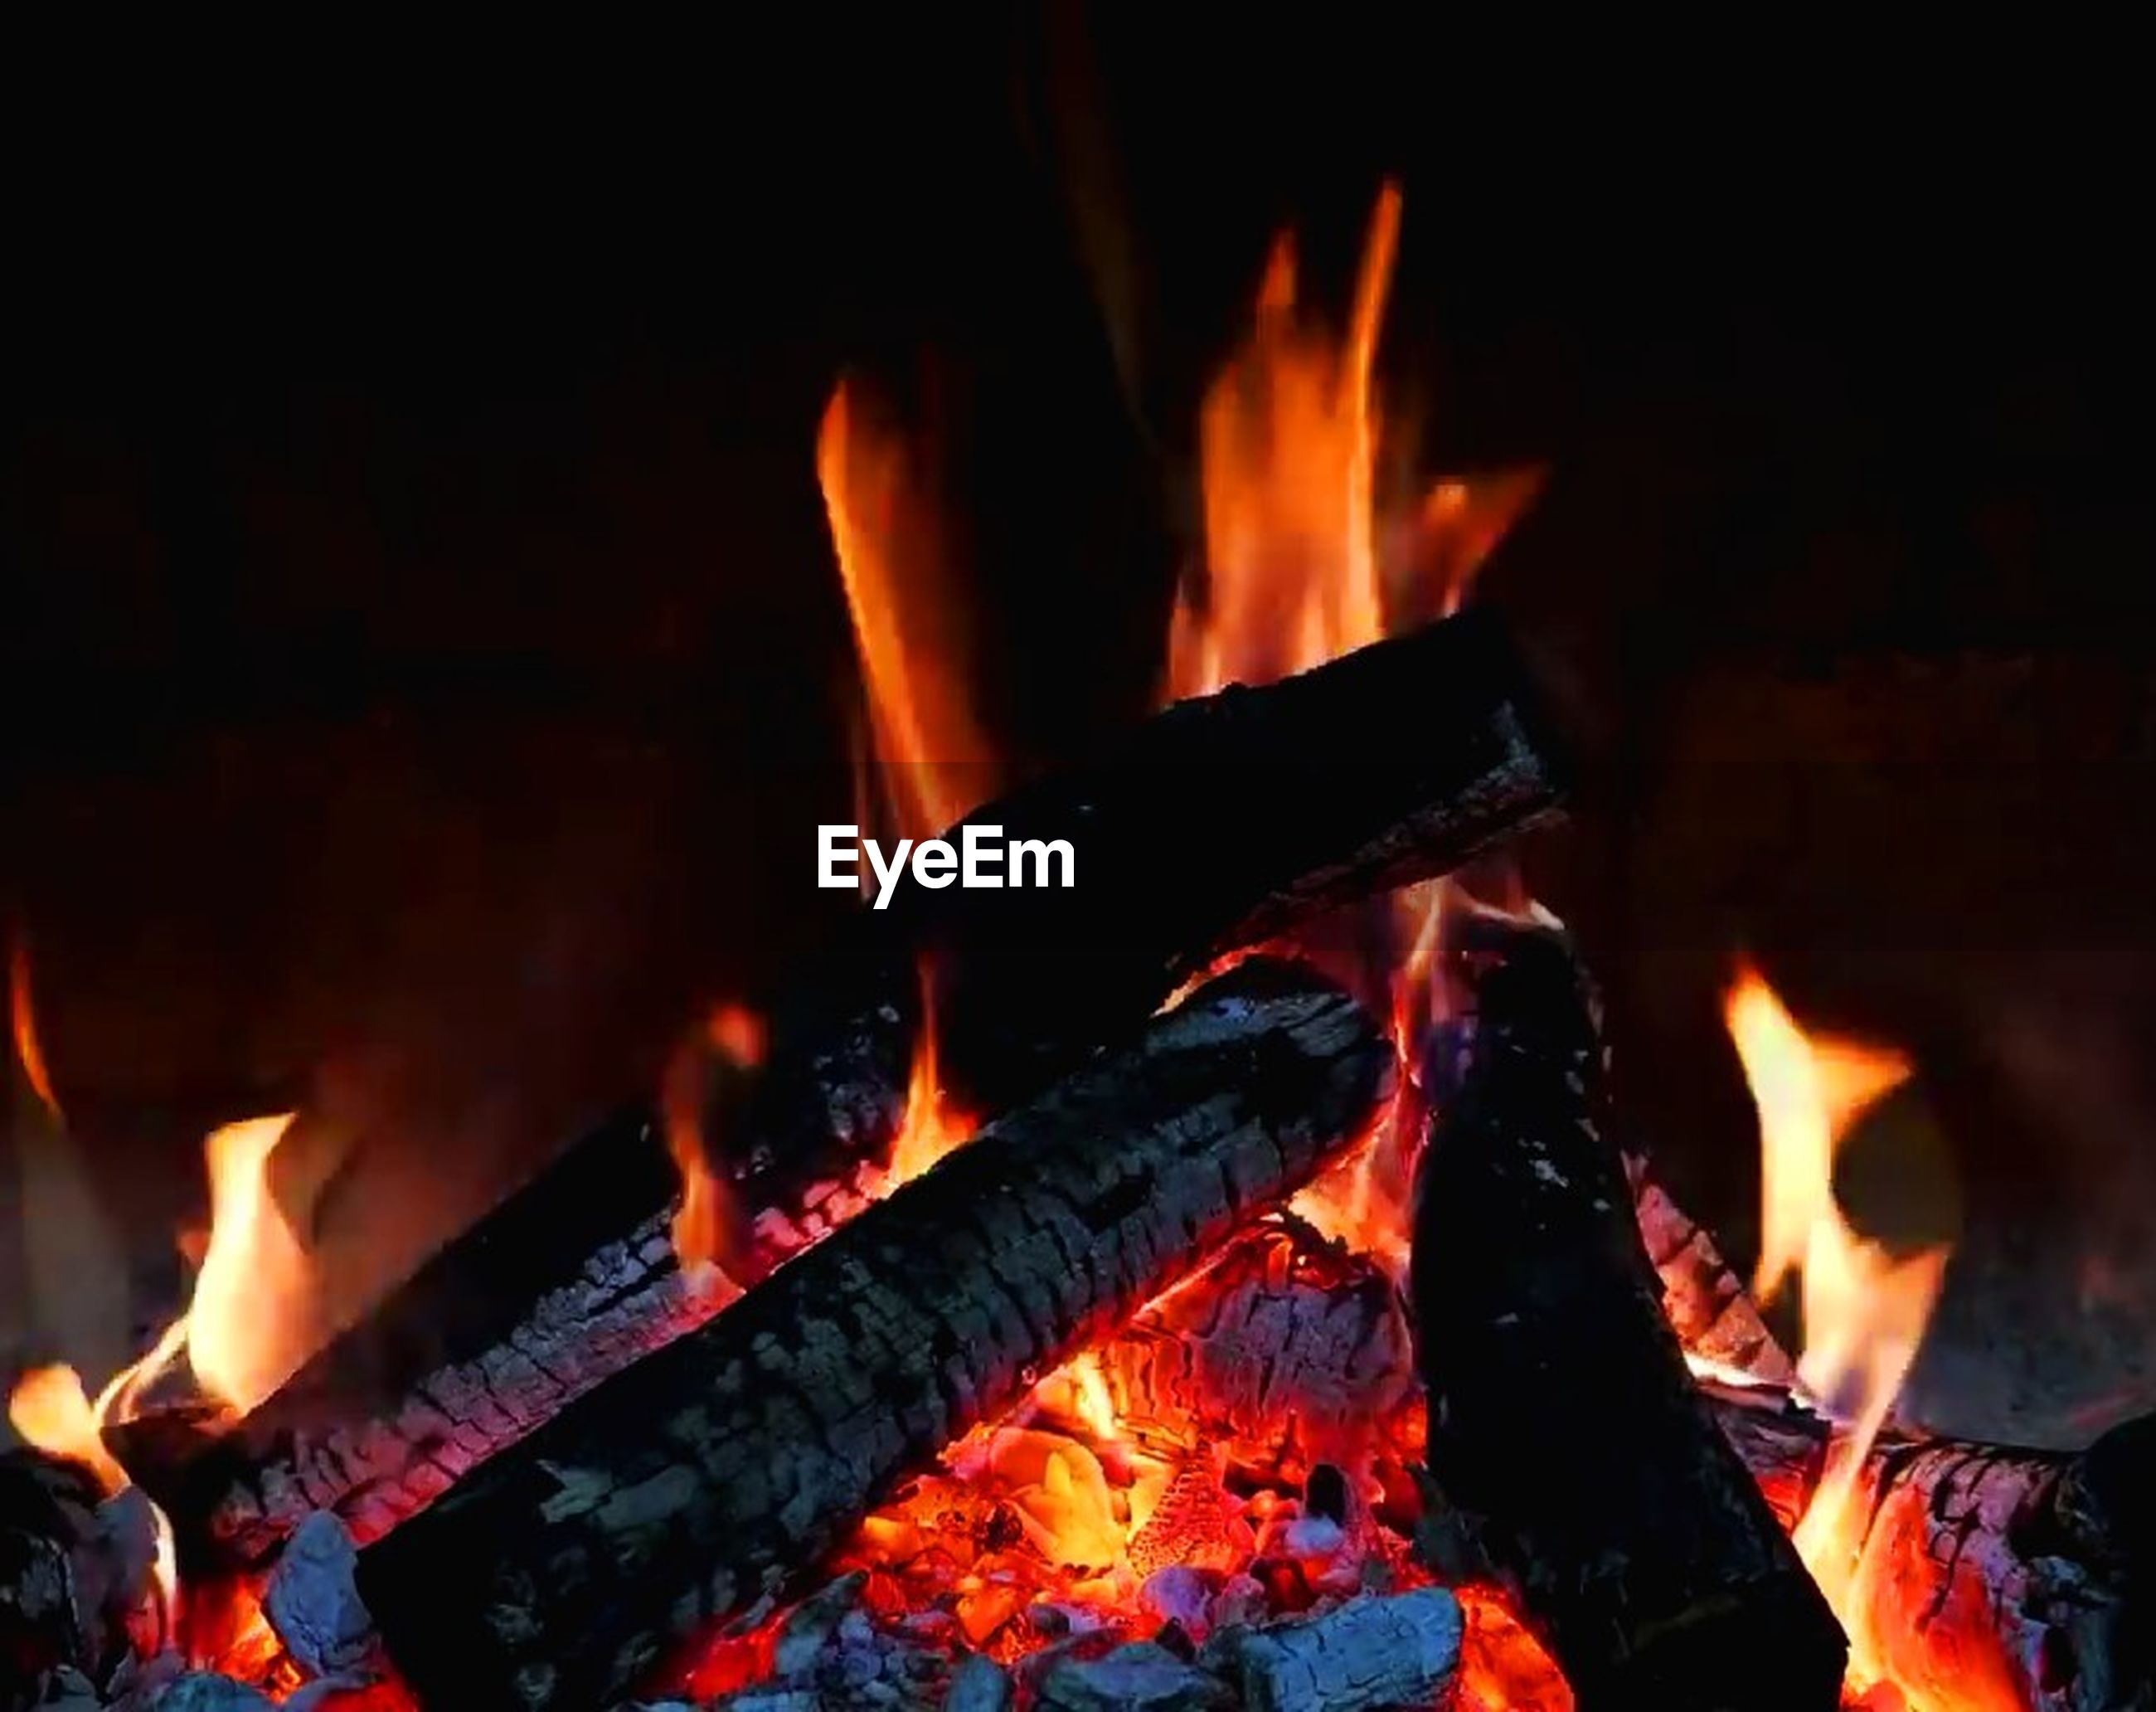 burning, fire, heat - temperature, fire - natural phenomenon, flame, firewood, log, wood - material, wood, nature, orange color, no people, close-up, motion, glowing, bonfire, night, camping, outdoors, environment, campfire